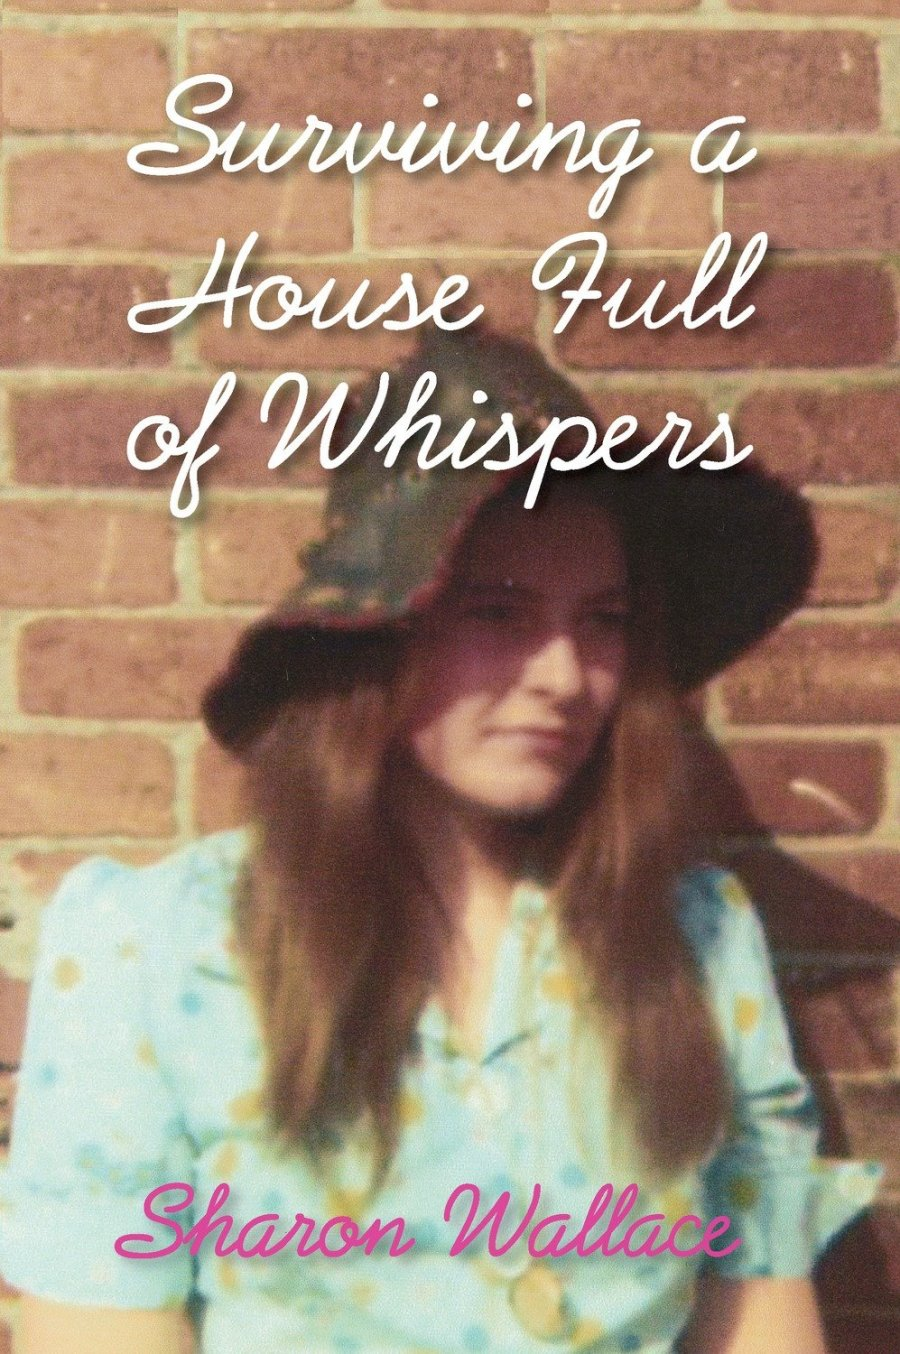 Surviving A House Full of Whispers